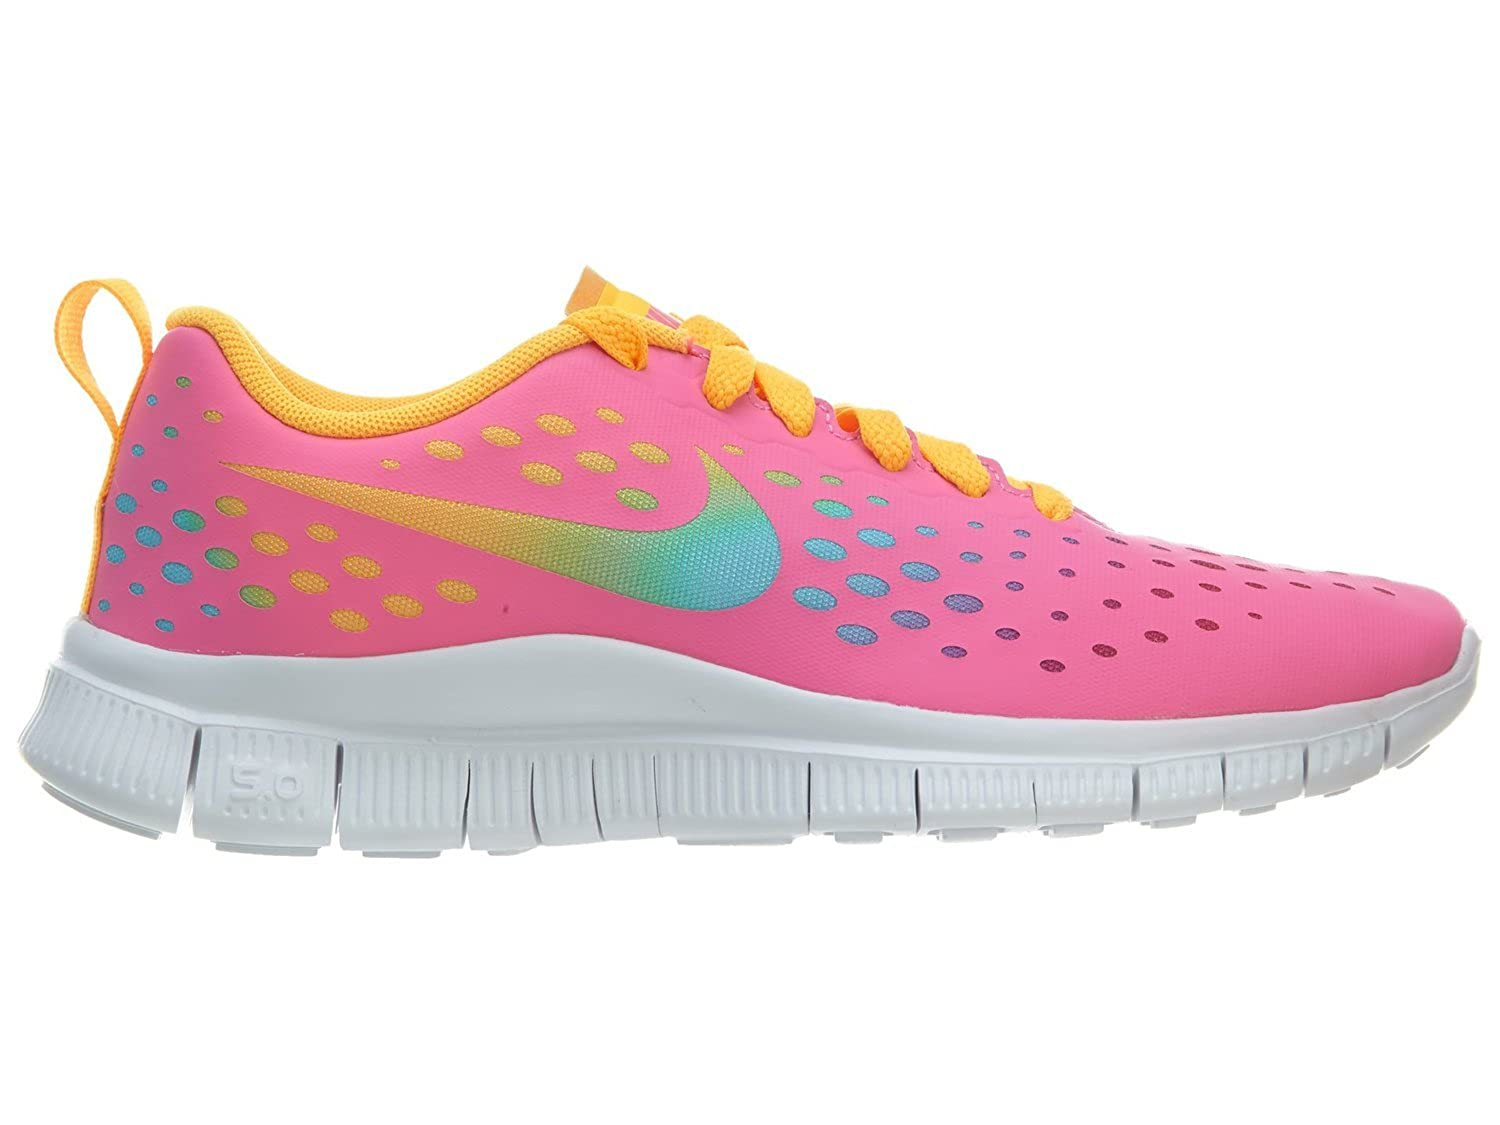 3a061986e9c9 Amazon.com  Nike Free Express Pink Kids Trainers Size 4.5Y US  Shoes